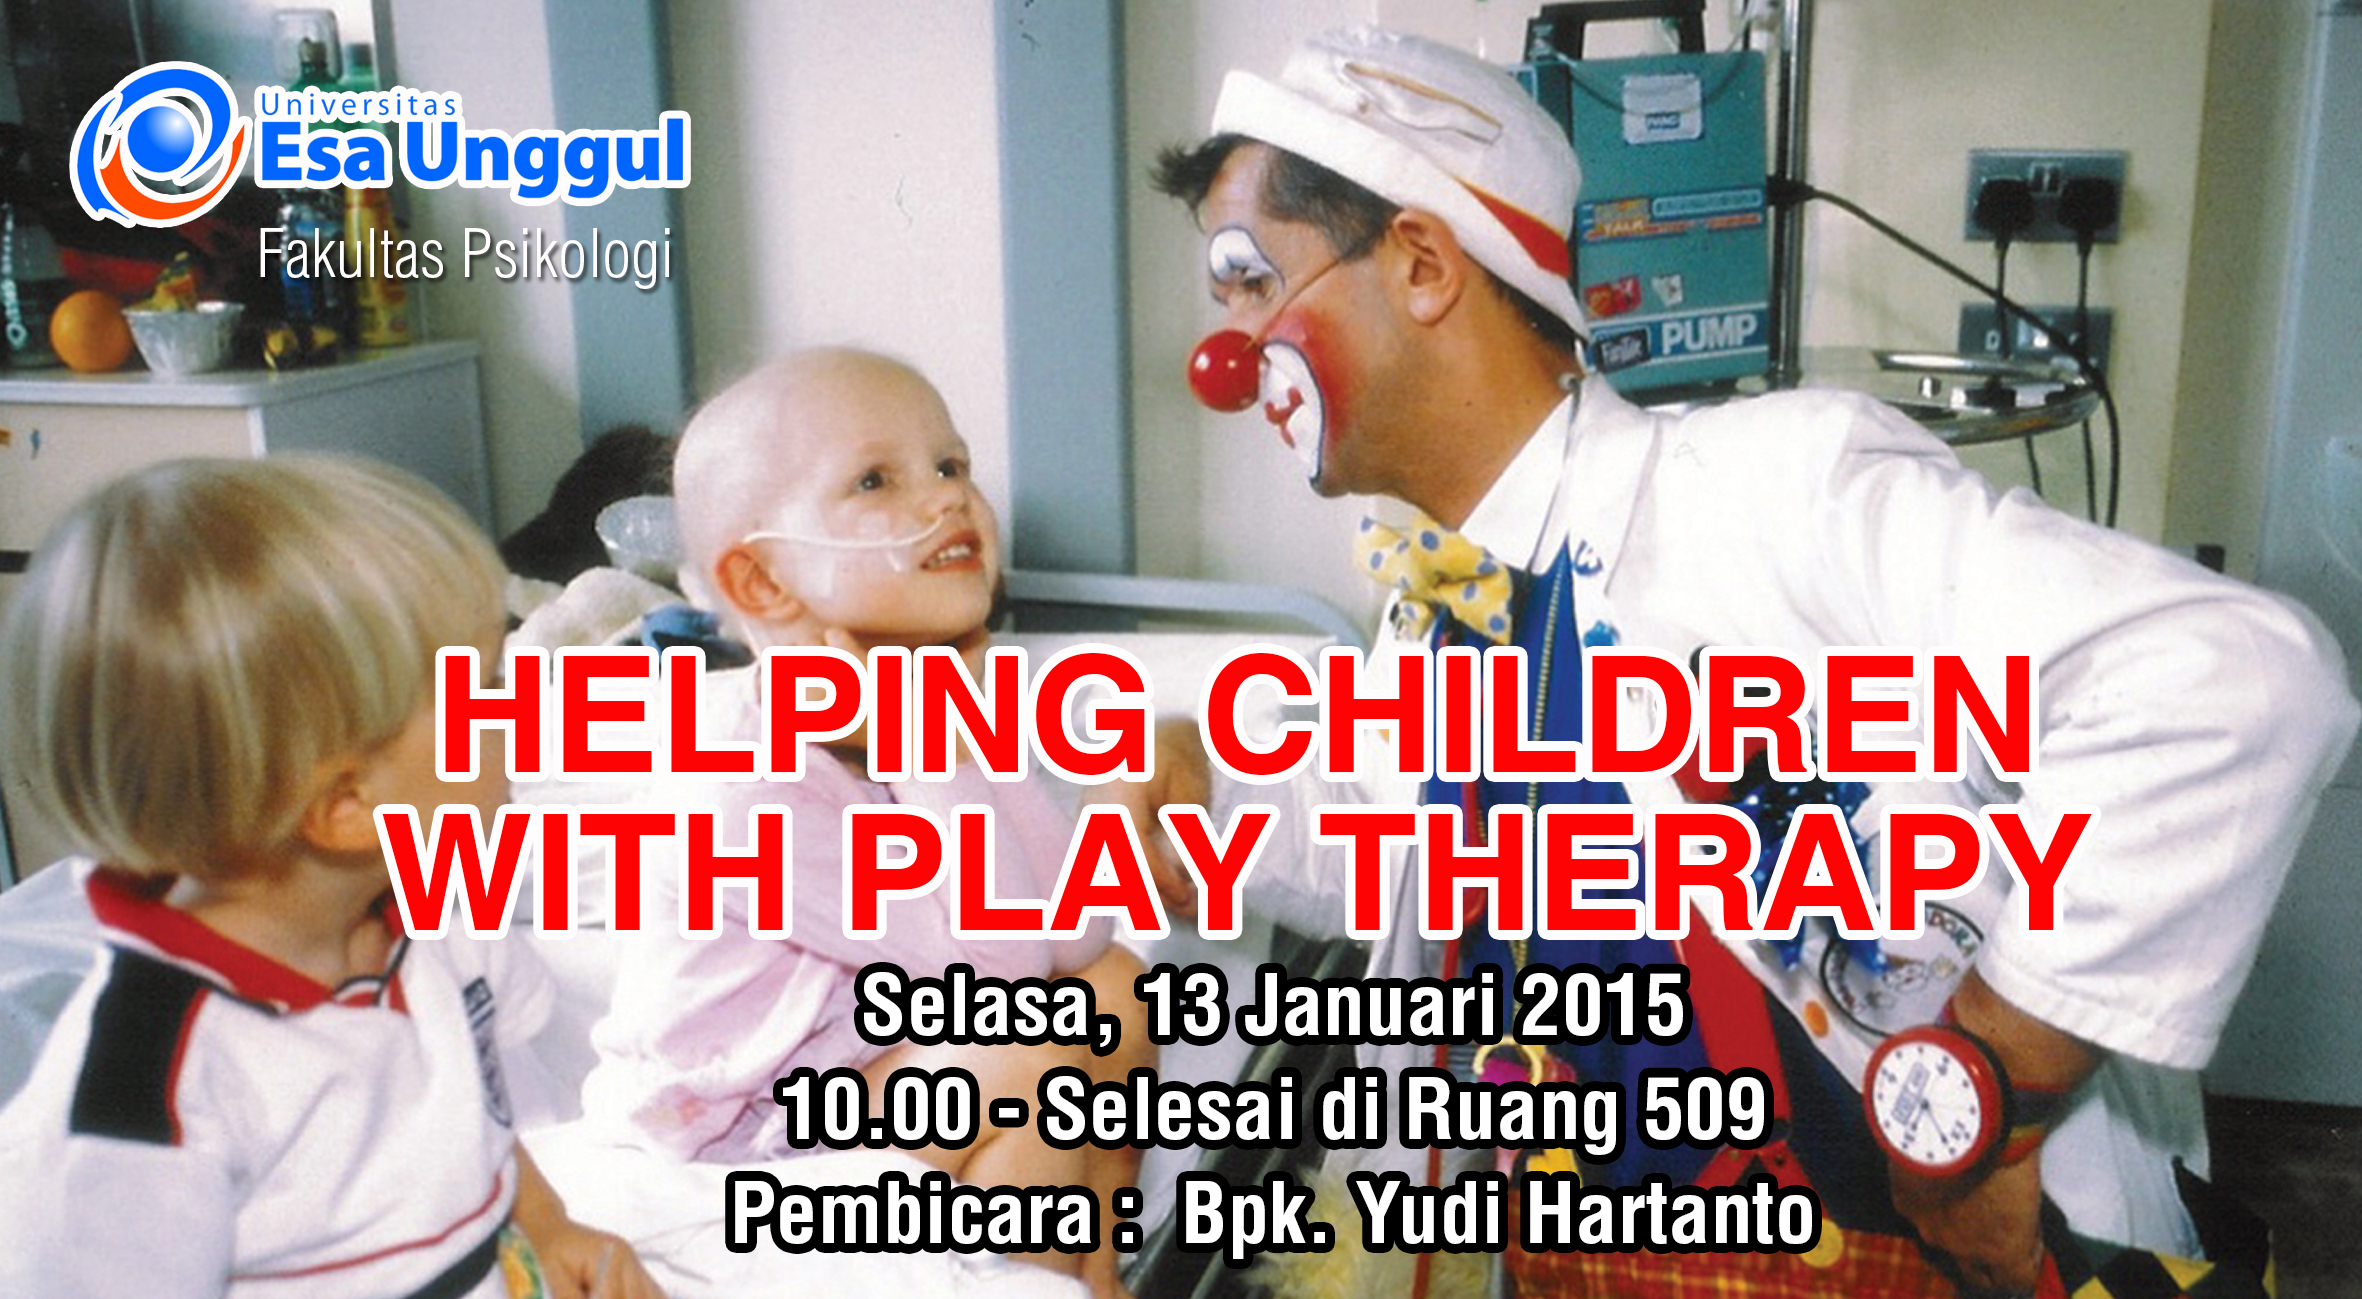 Fakultas Psikologi menyelenggarakan HELPING CHILDREN WITH PLAY THERAPY